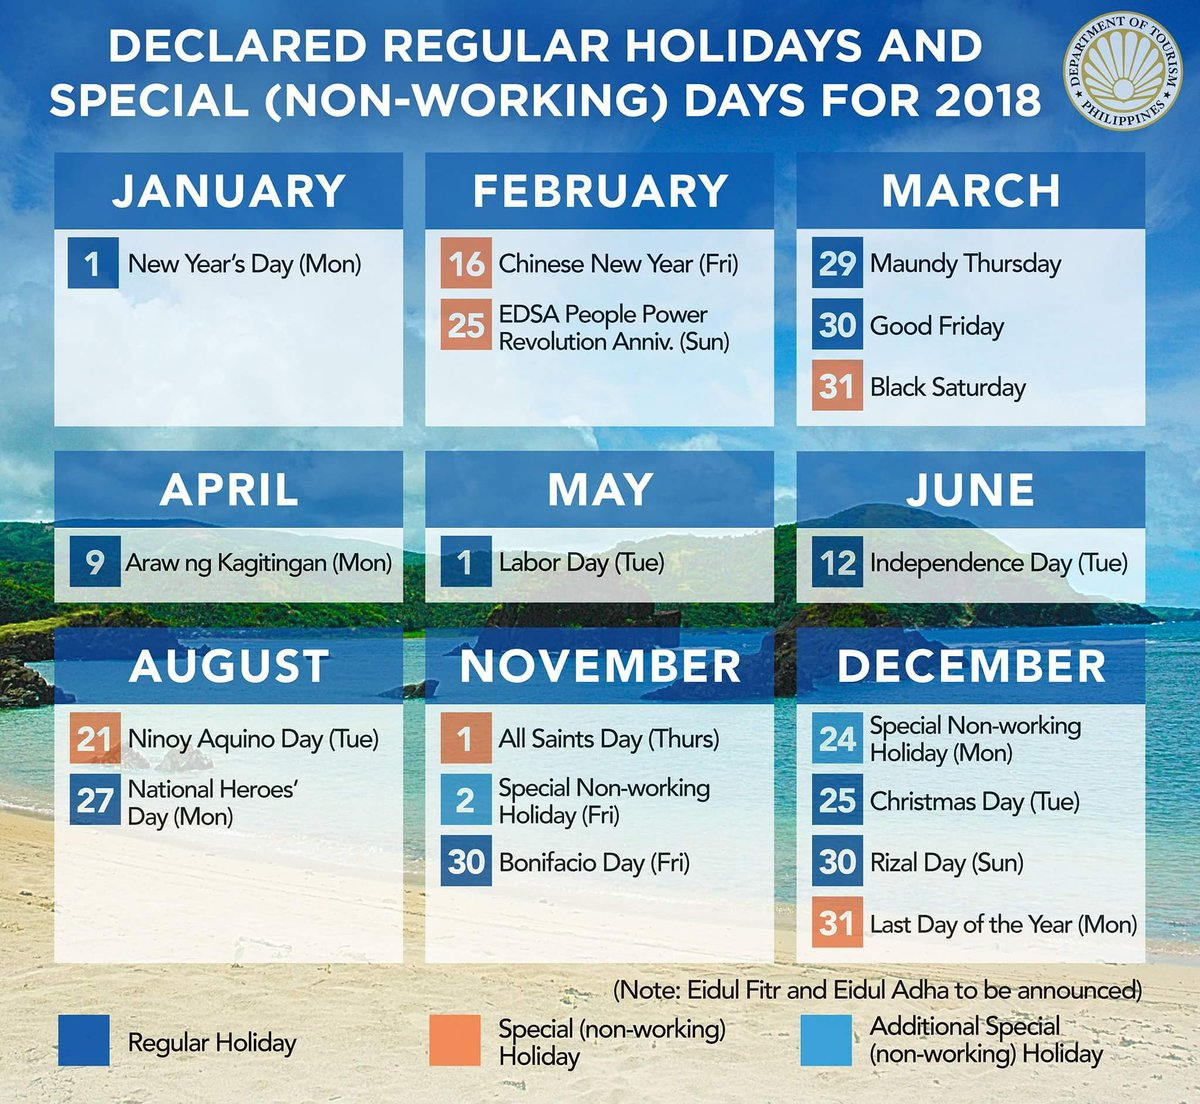 visit philippines on twitter calendar 2018 philippine public holidays and special non working days itsmorefuninthephilippines bringhomeafriend